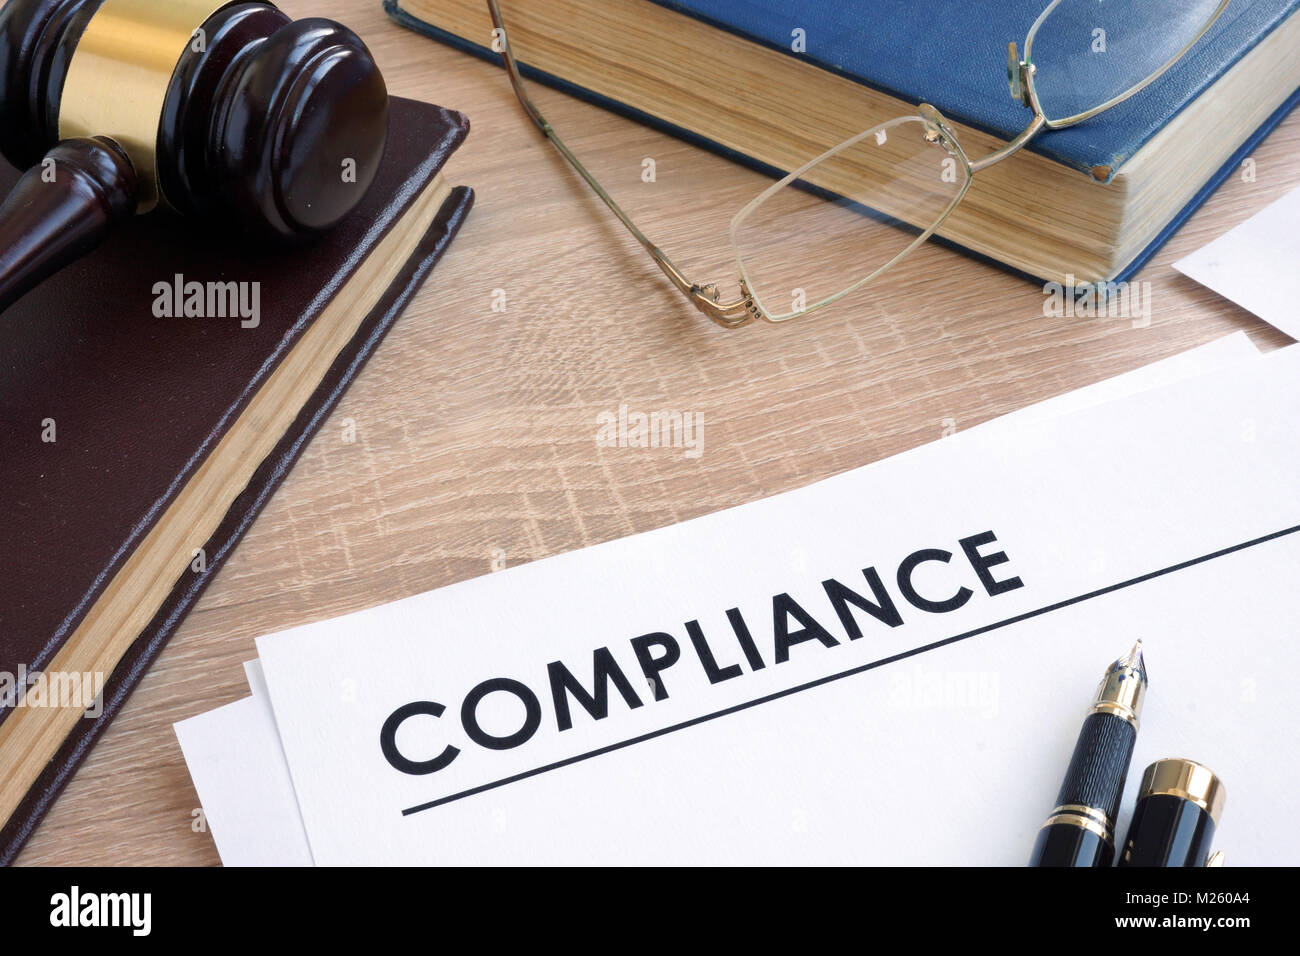 Compliance on a wooden desk with books. - Stock Image